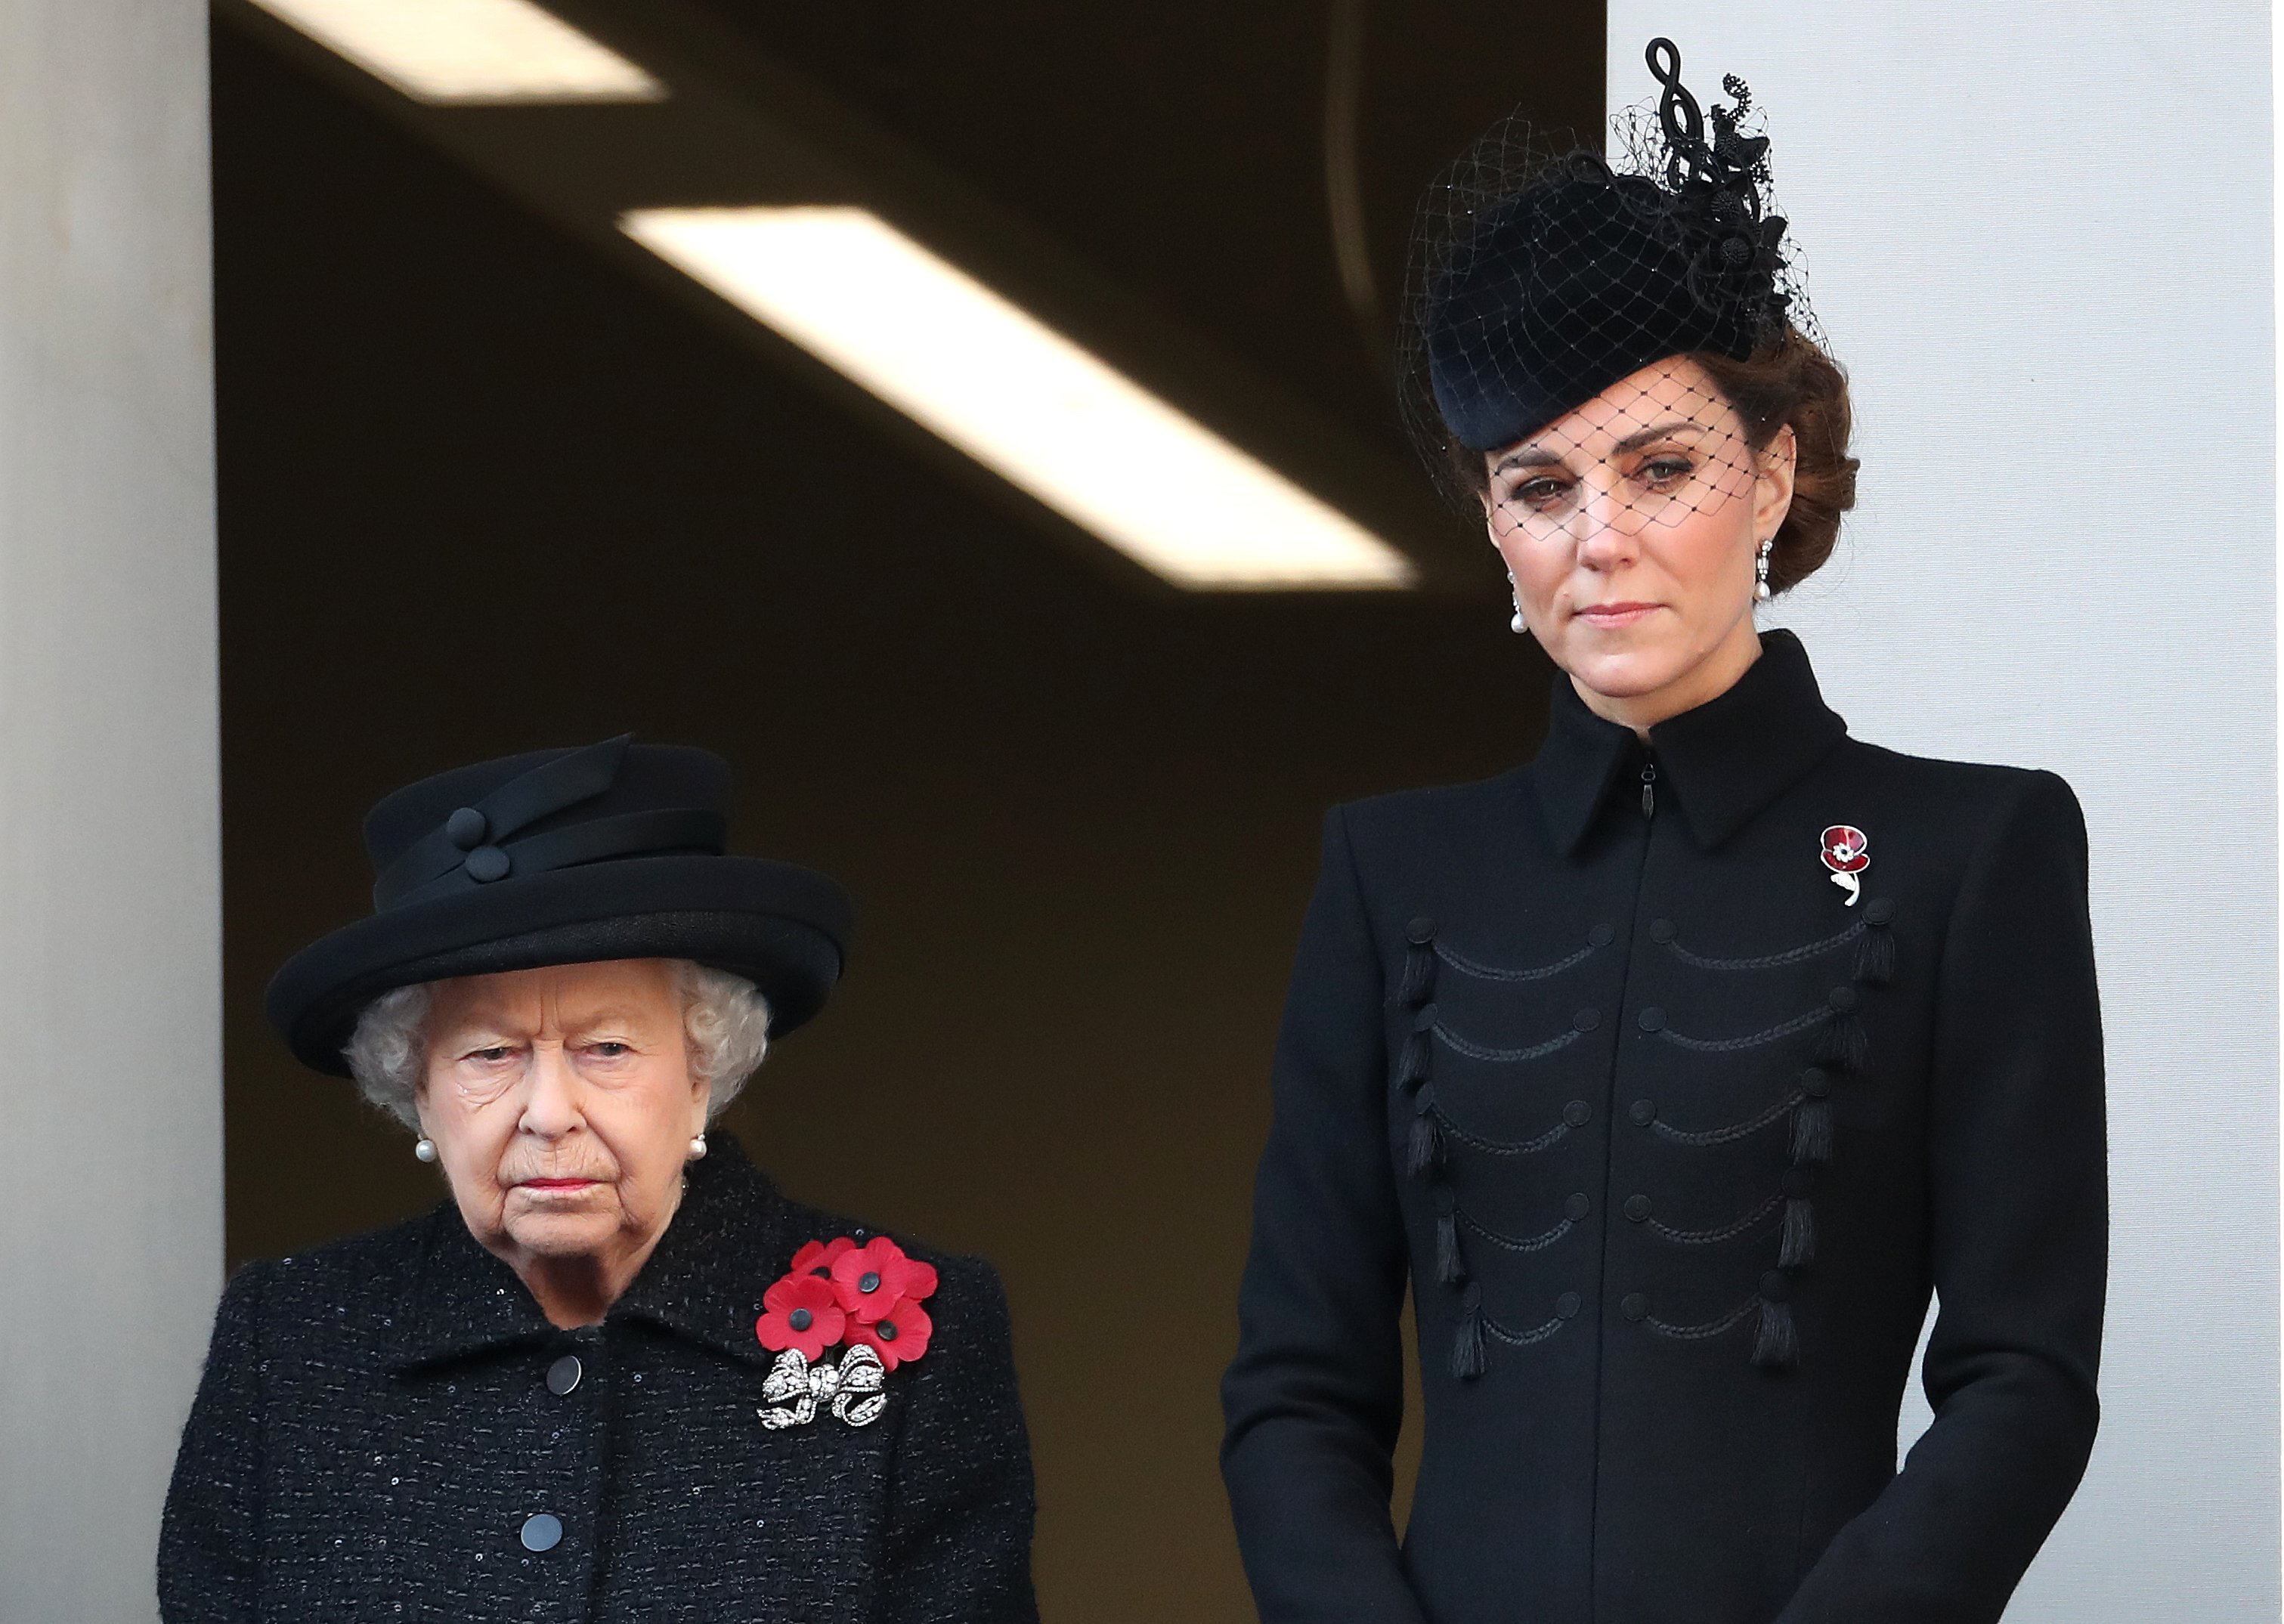 Kate Middleton standing next to Queen Elizabeth at the annual Remembrance Sunday memorial at The Cenotaph in London, England